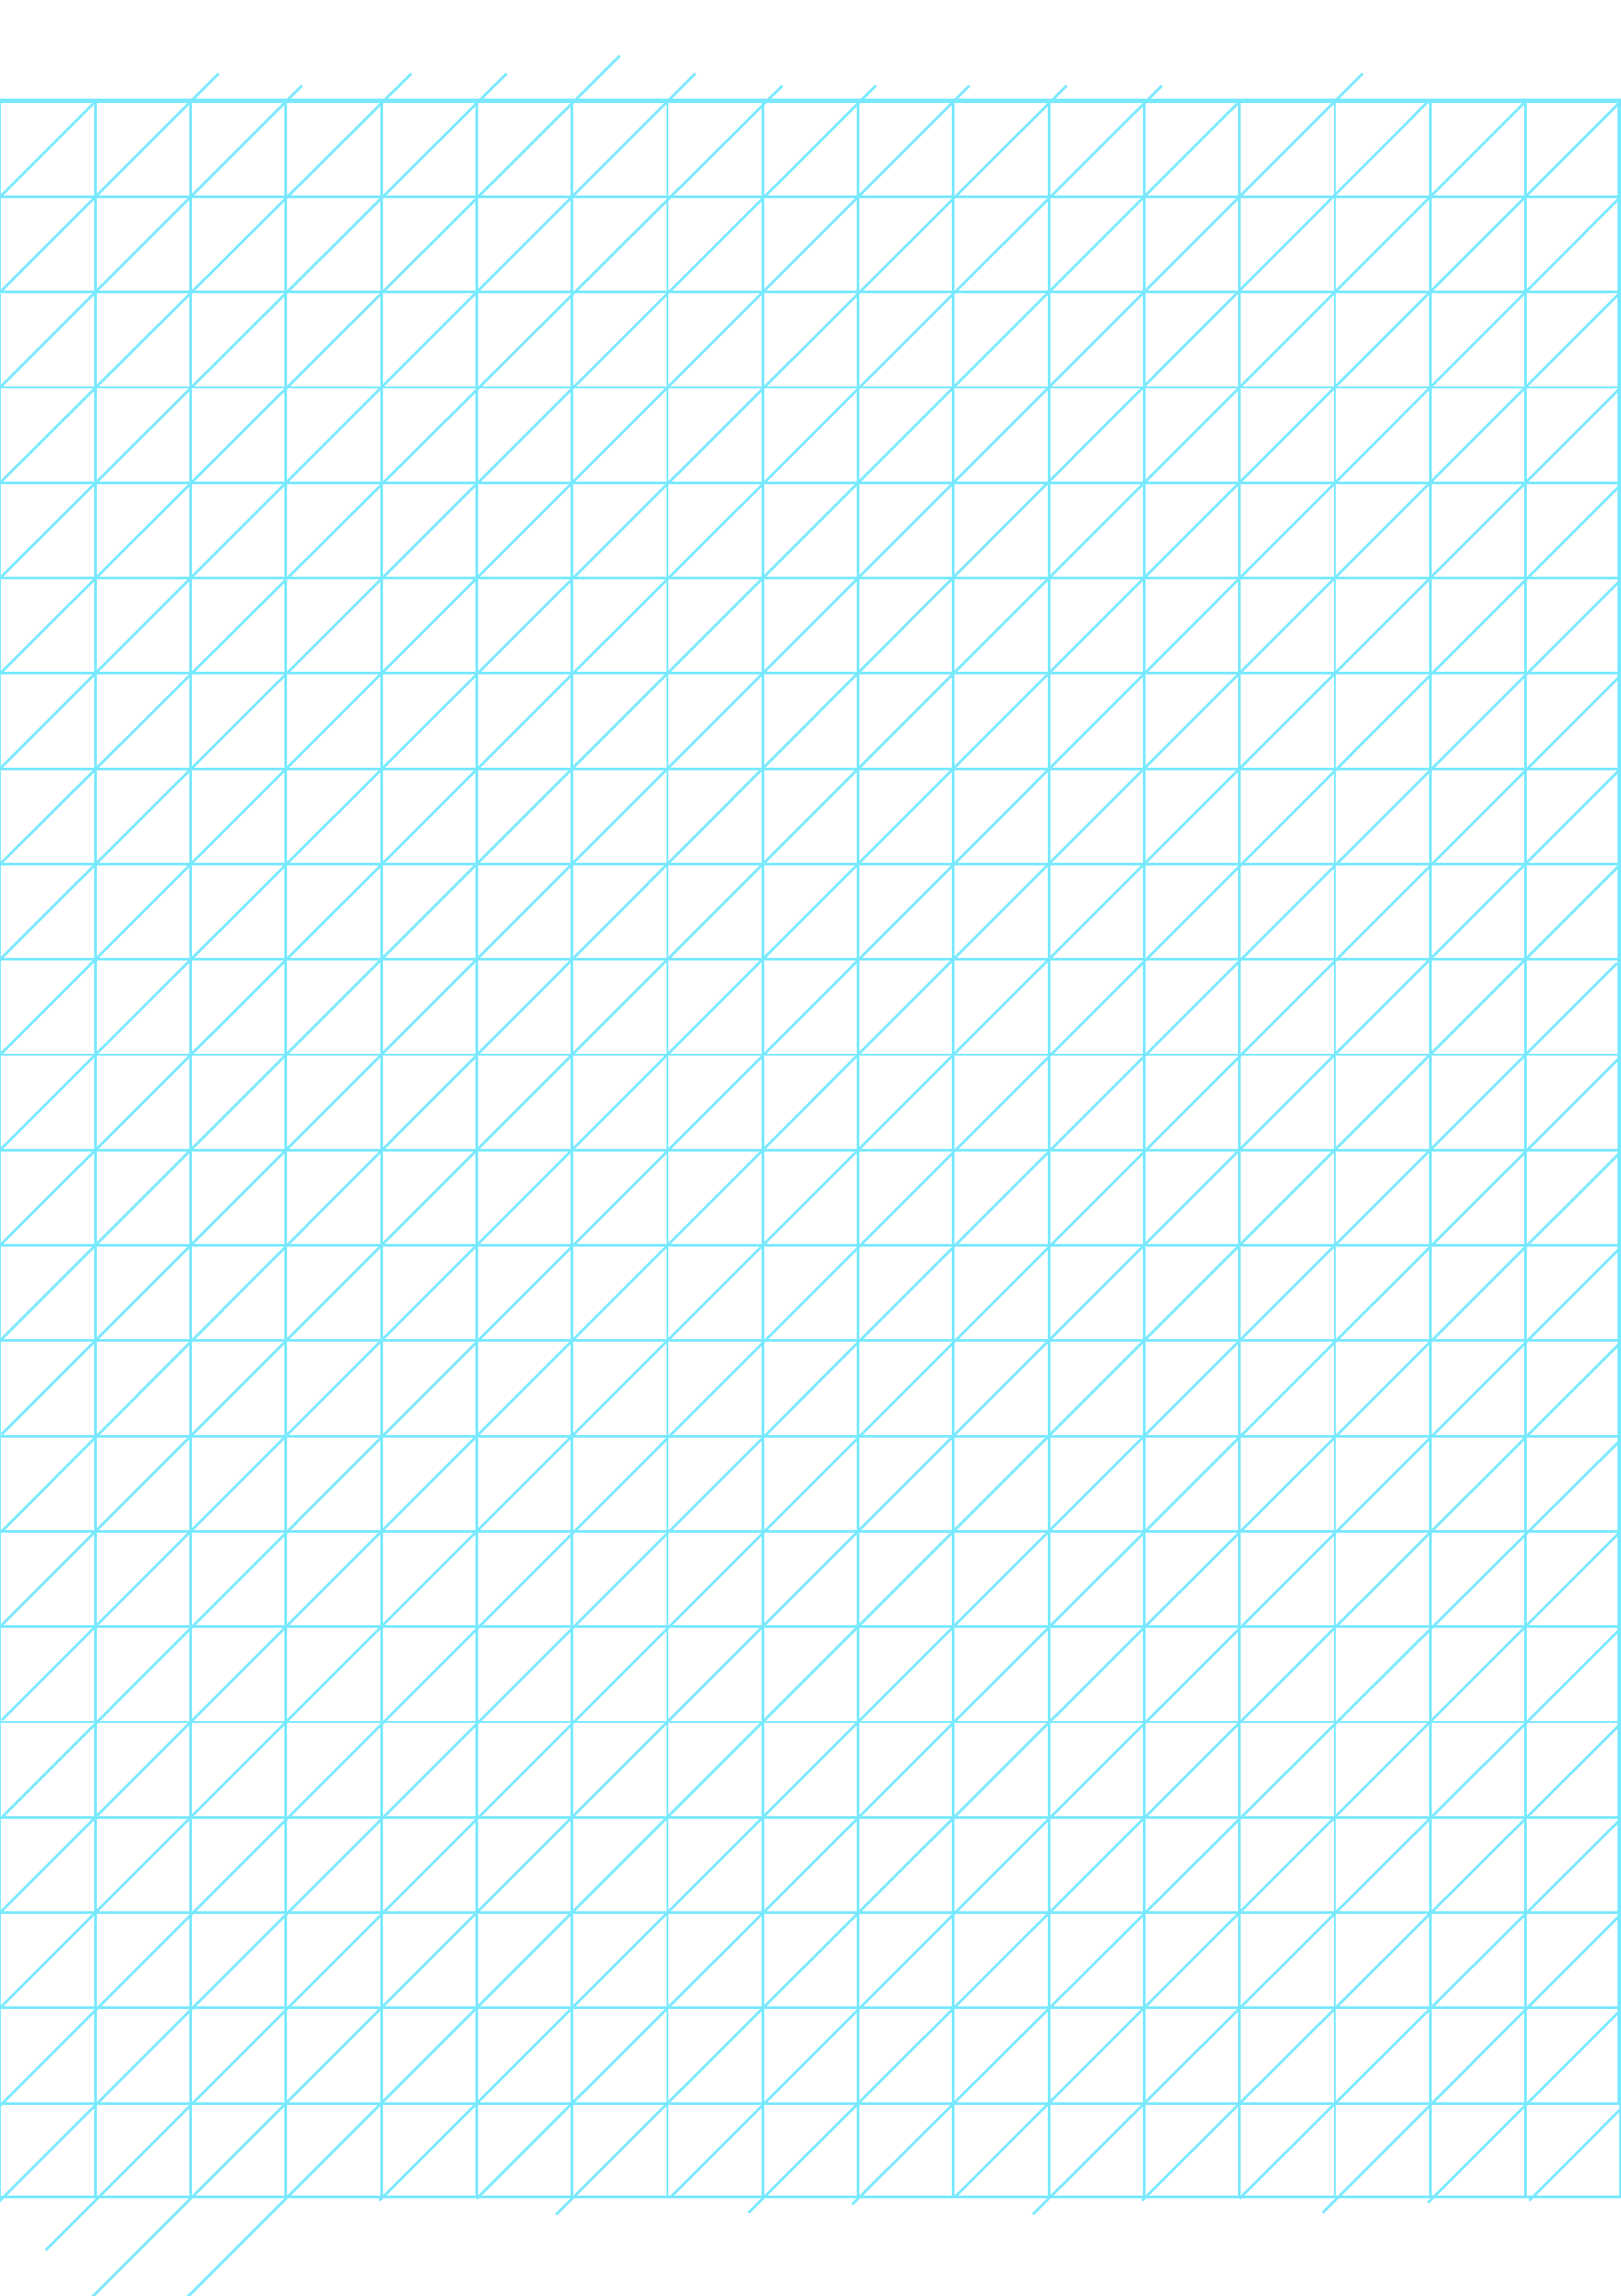 oblique graph paper 05 inch free download